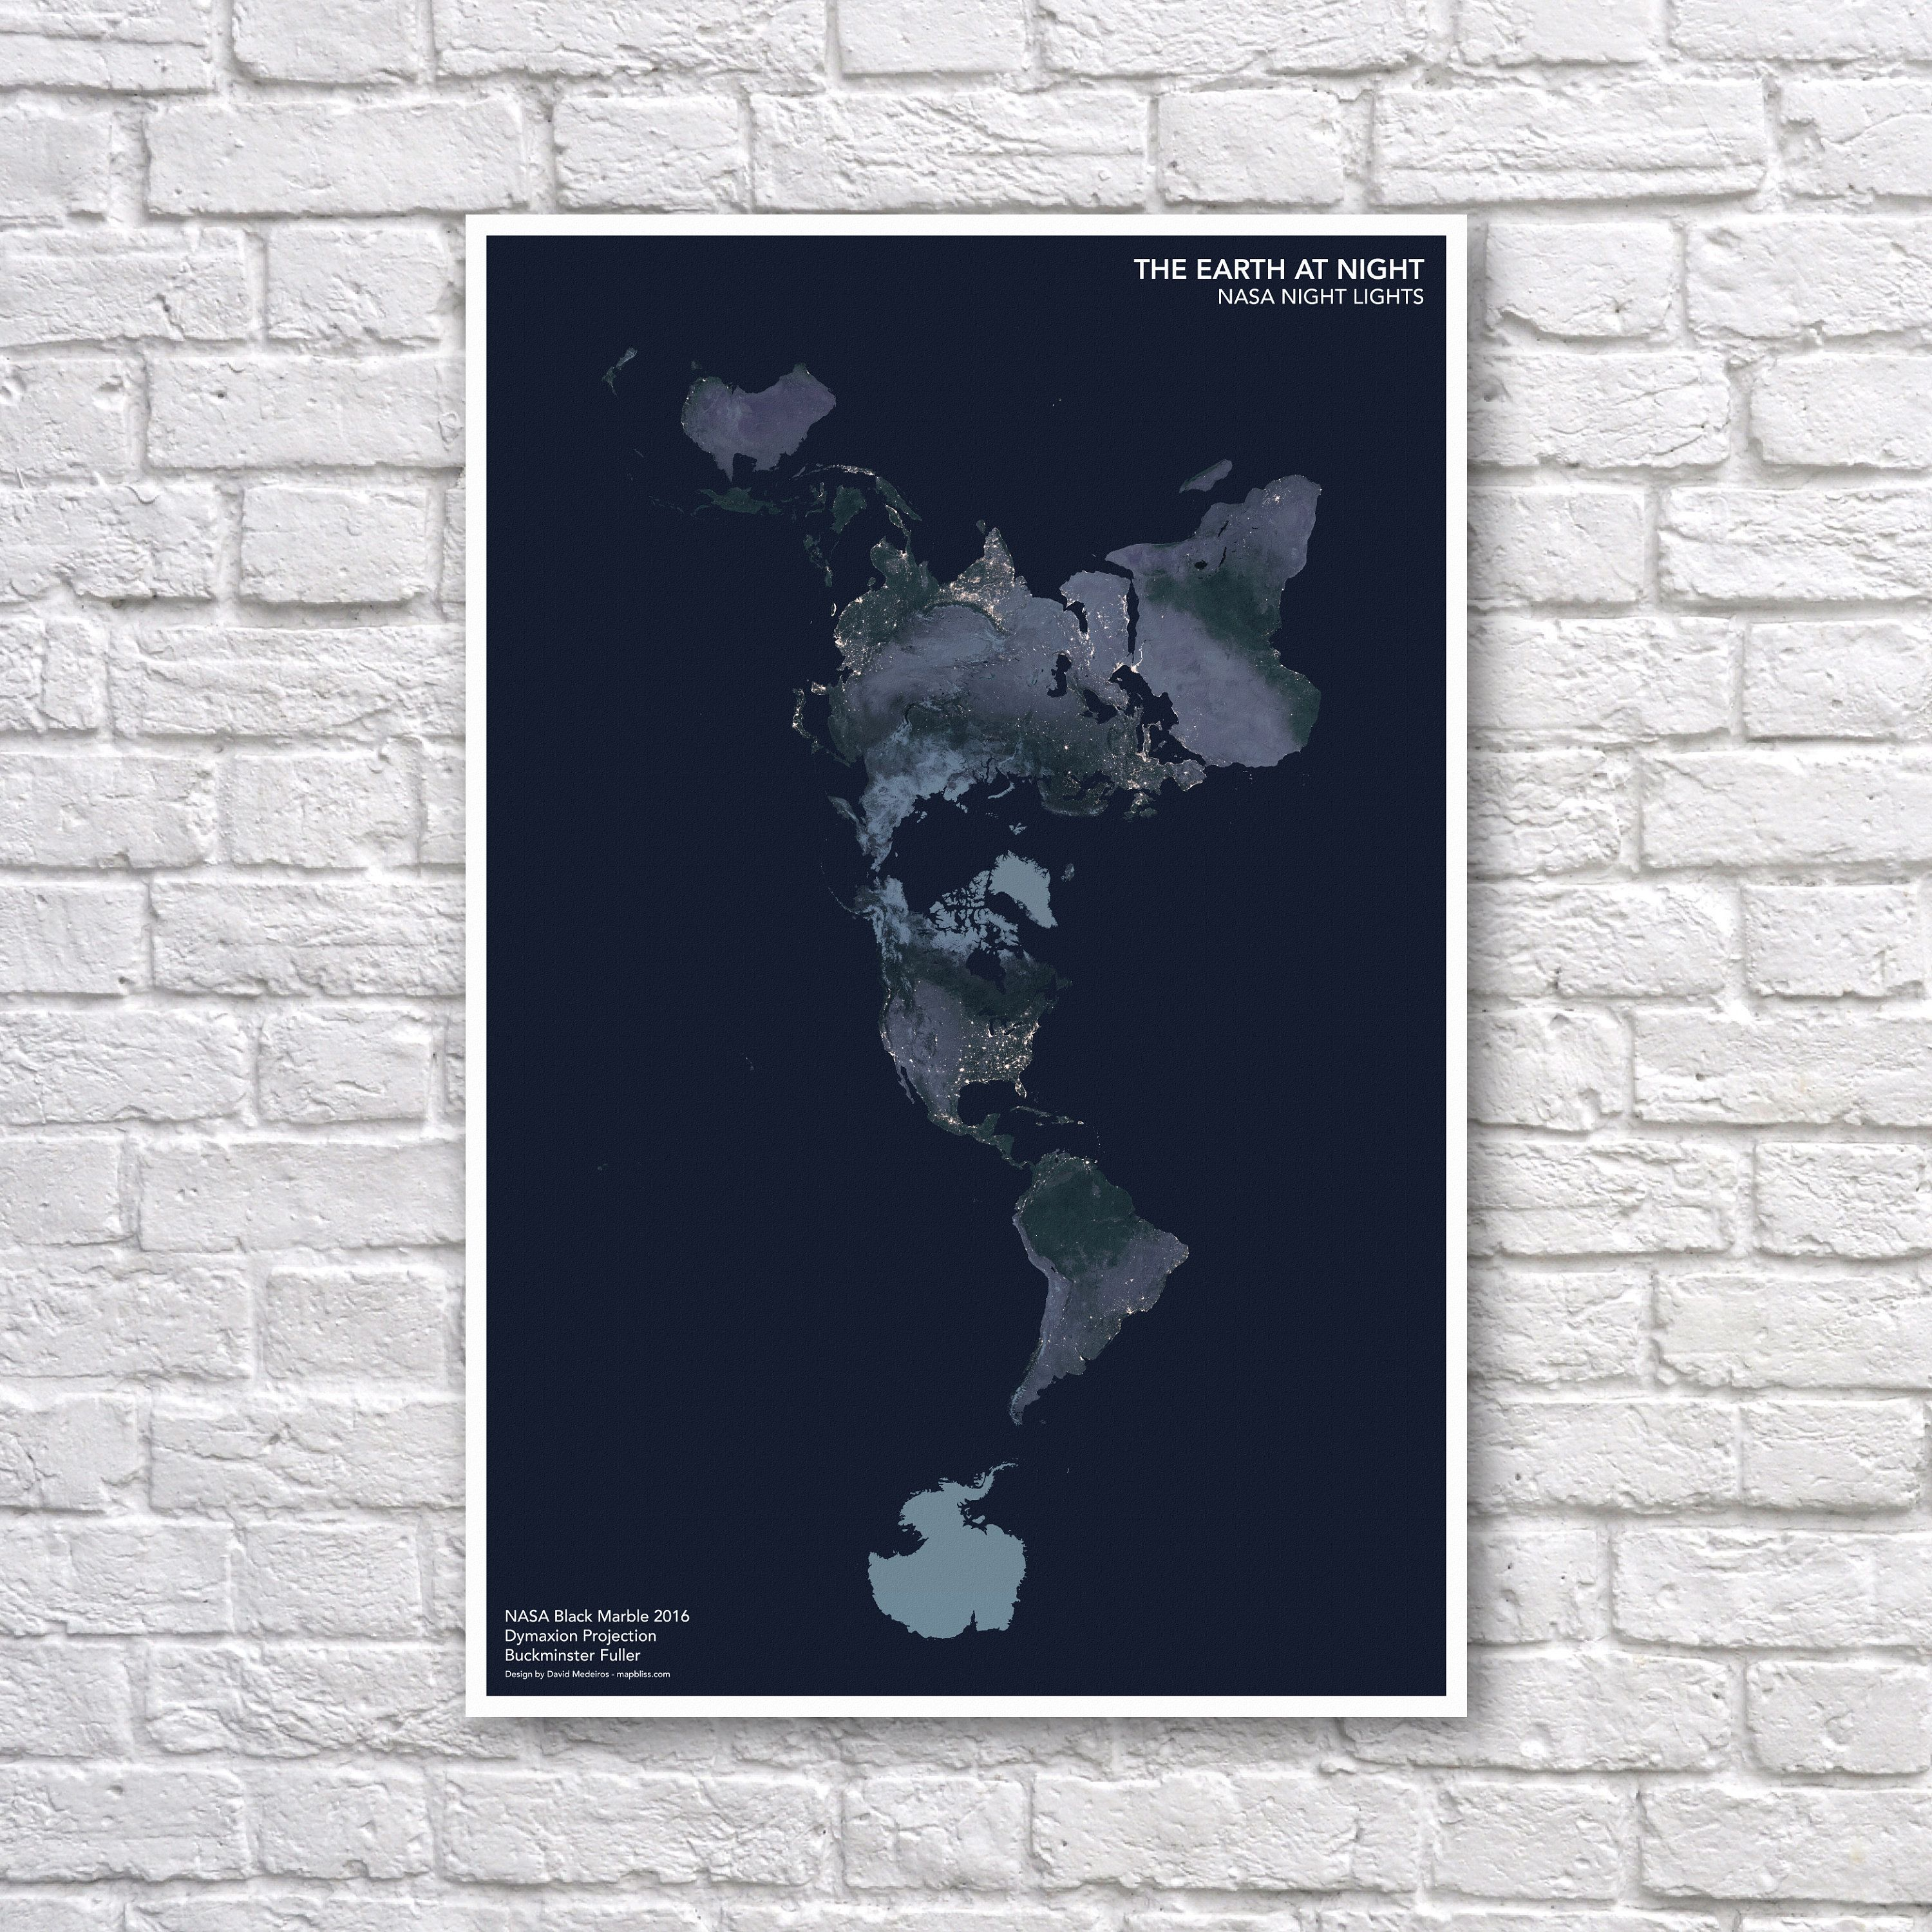 Nasa earth at night poster night lights image buckminster fuller nasa earth at night poster night lights image buckminster fuller projection world map gumiabroncs Images